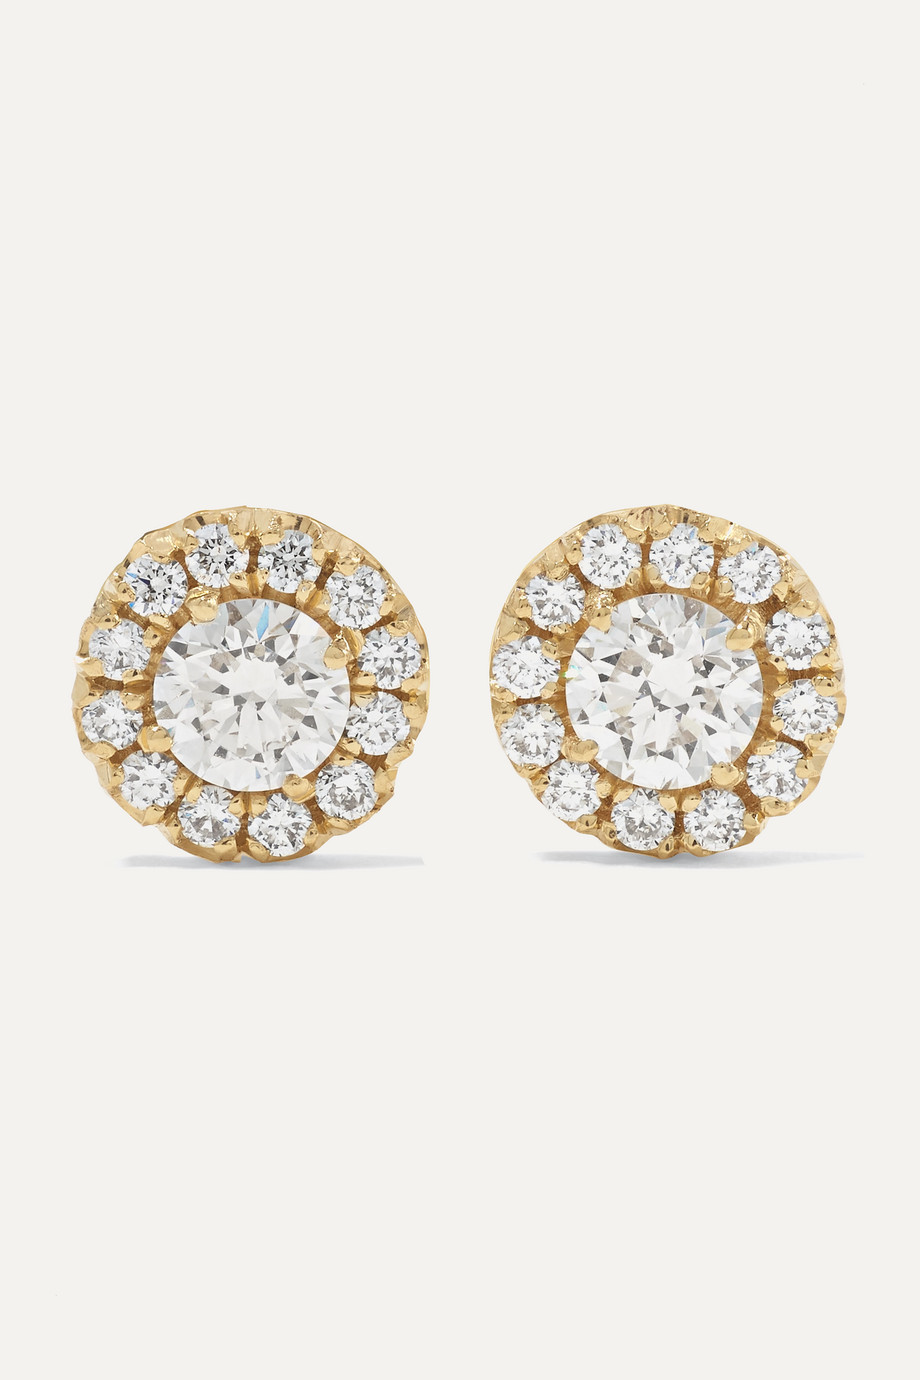 SUZANNE KALAN 18-karat gold diamond earrings